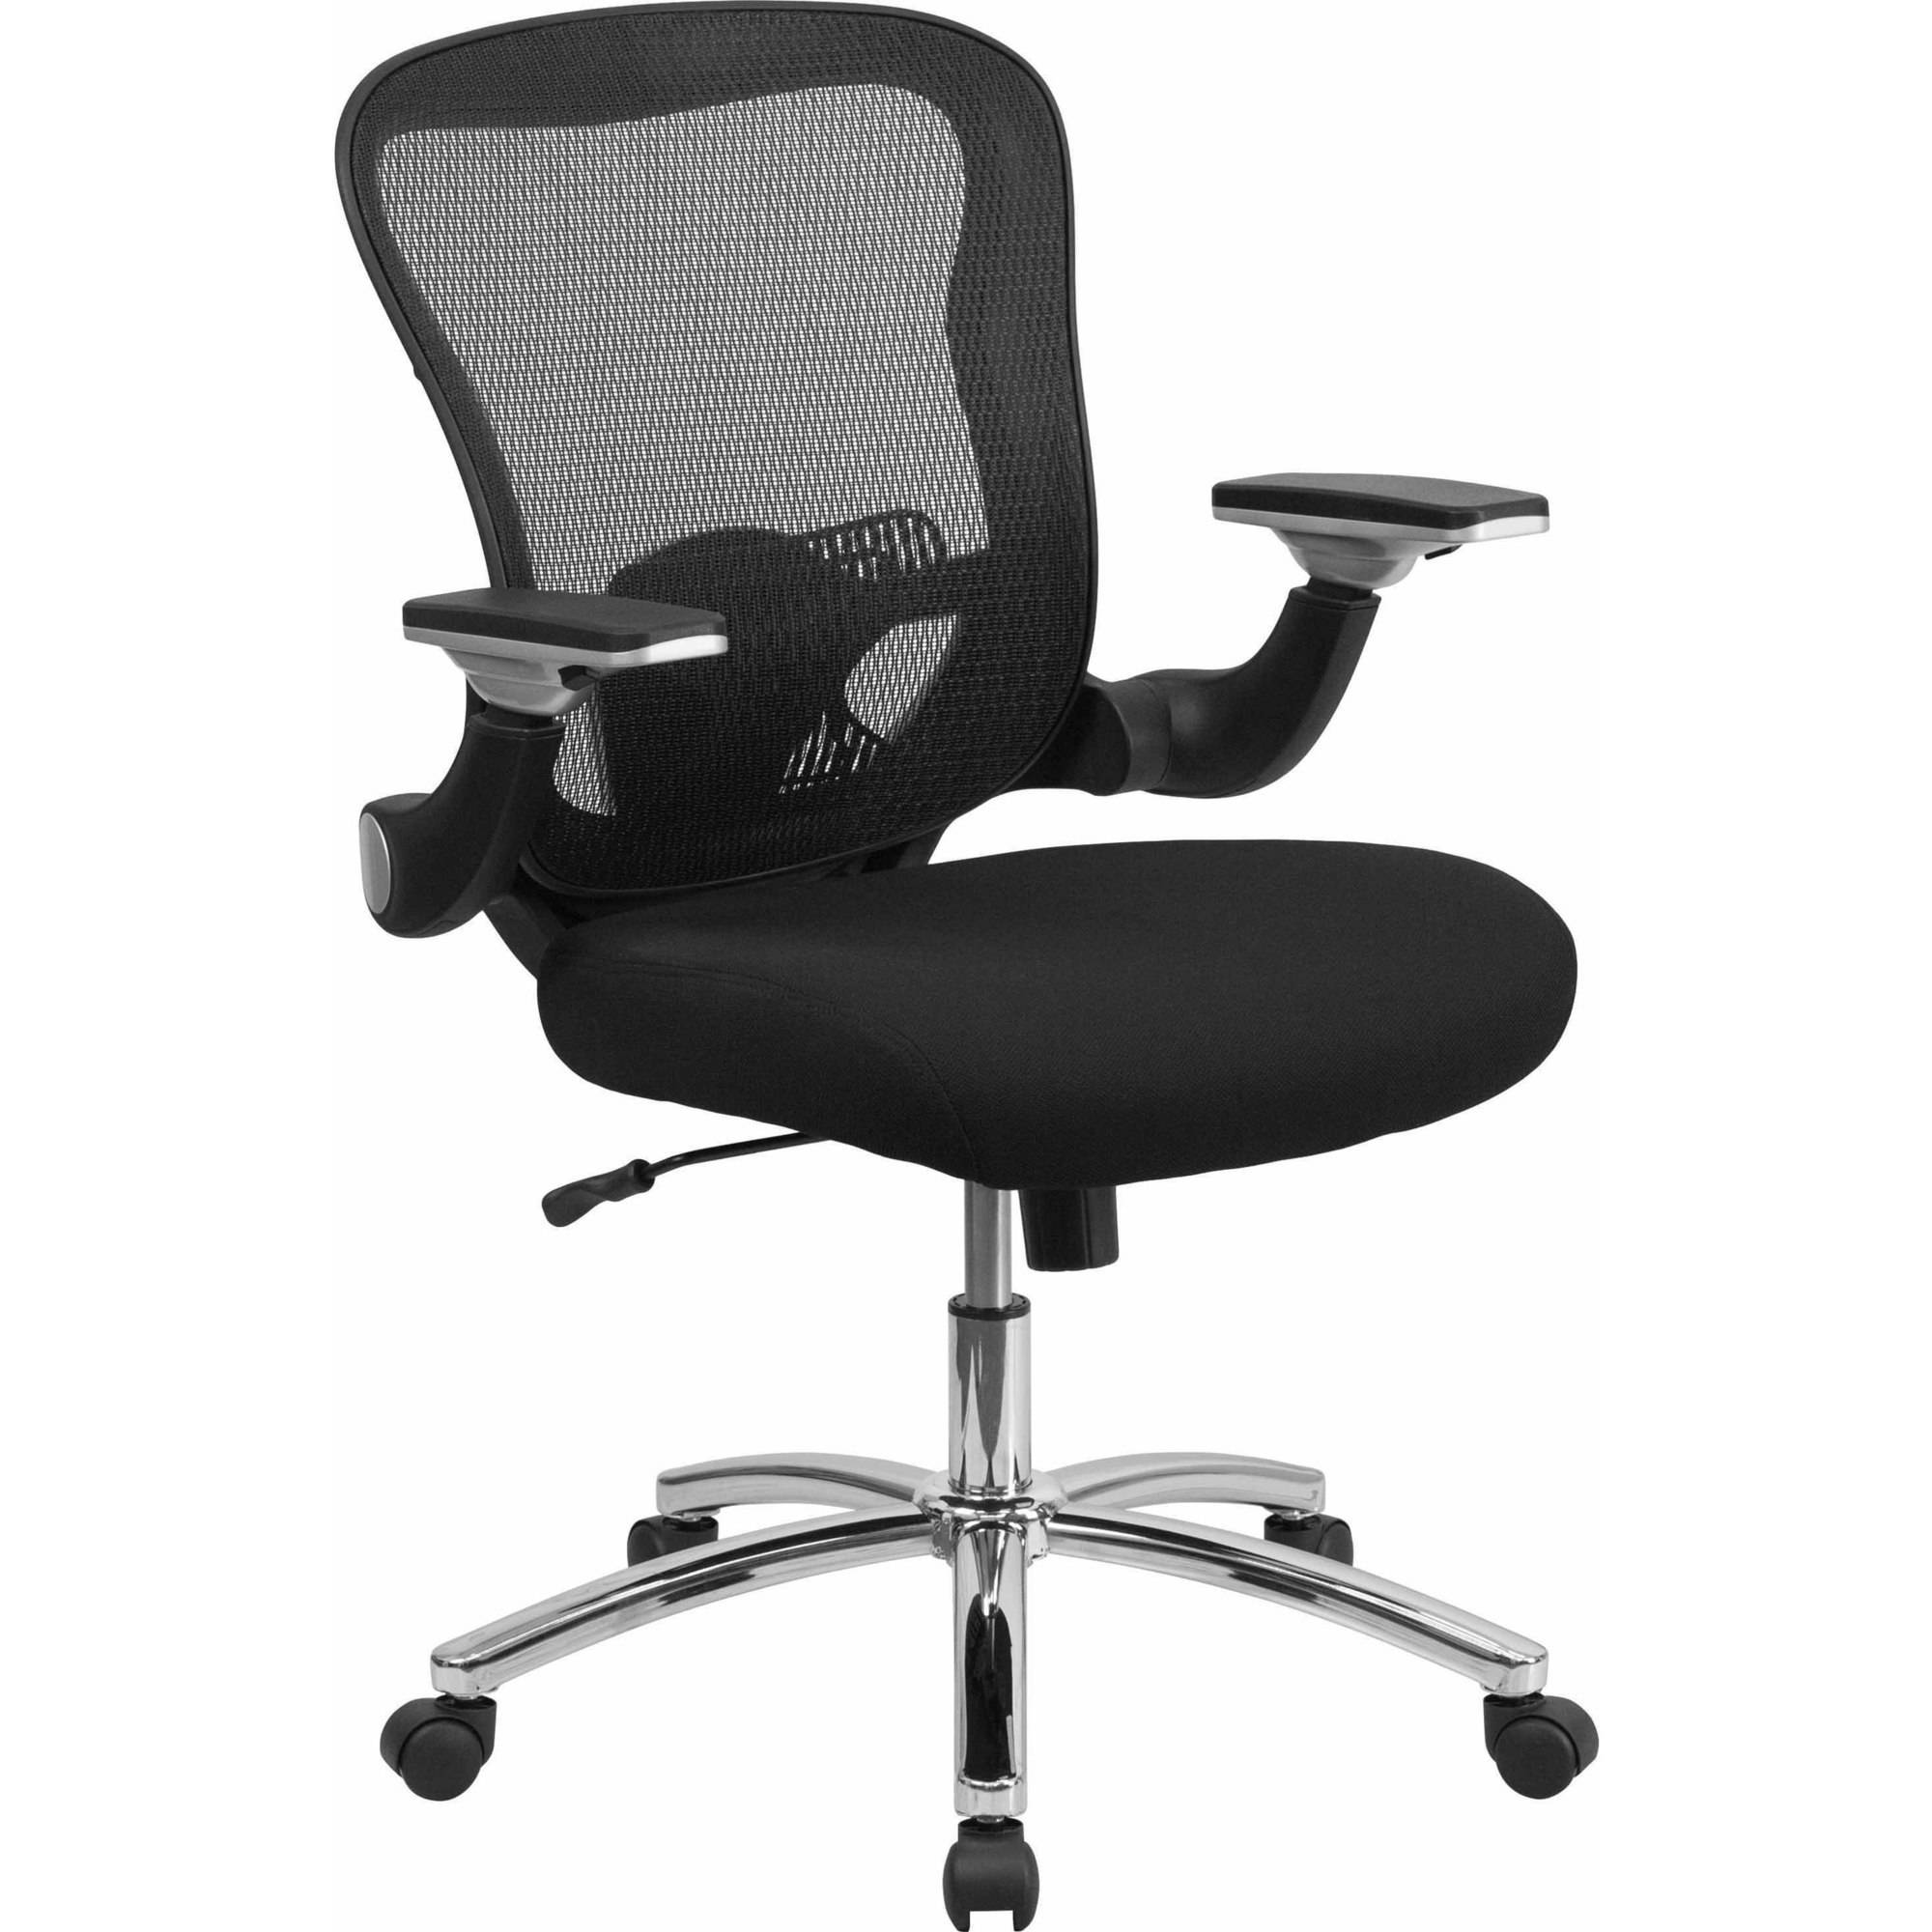 Black and white office chair - X Video Rocker Executive Office Chair With 2 0 Bluetooth Sound Black White 0287401 Walmart Com